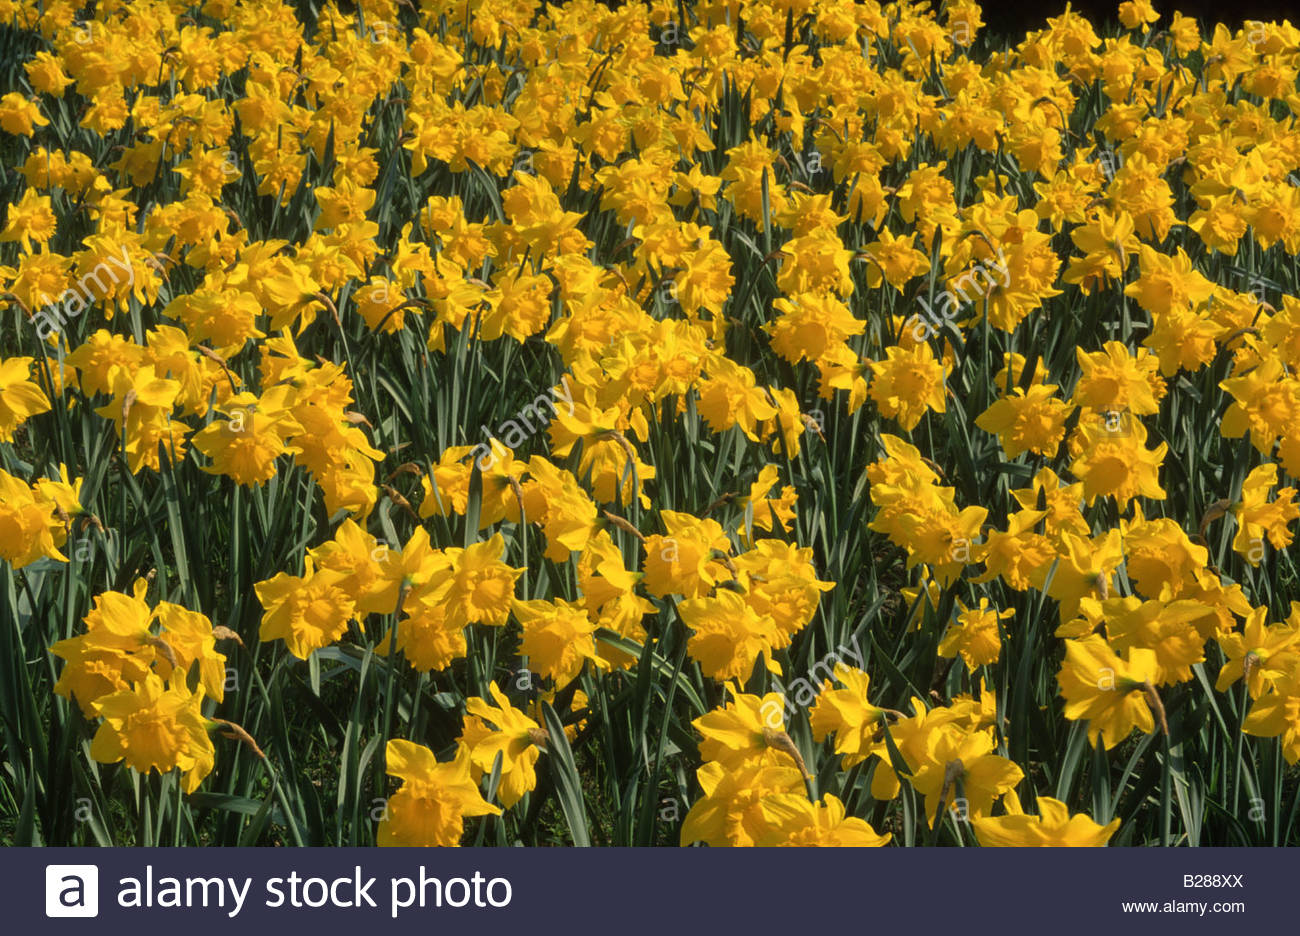 Daffodil narcissus golden harvest yellow spring flower daffodils daffodil narcissus golden harvest yellow spring flower daffodils flowers mightylinksfo